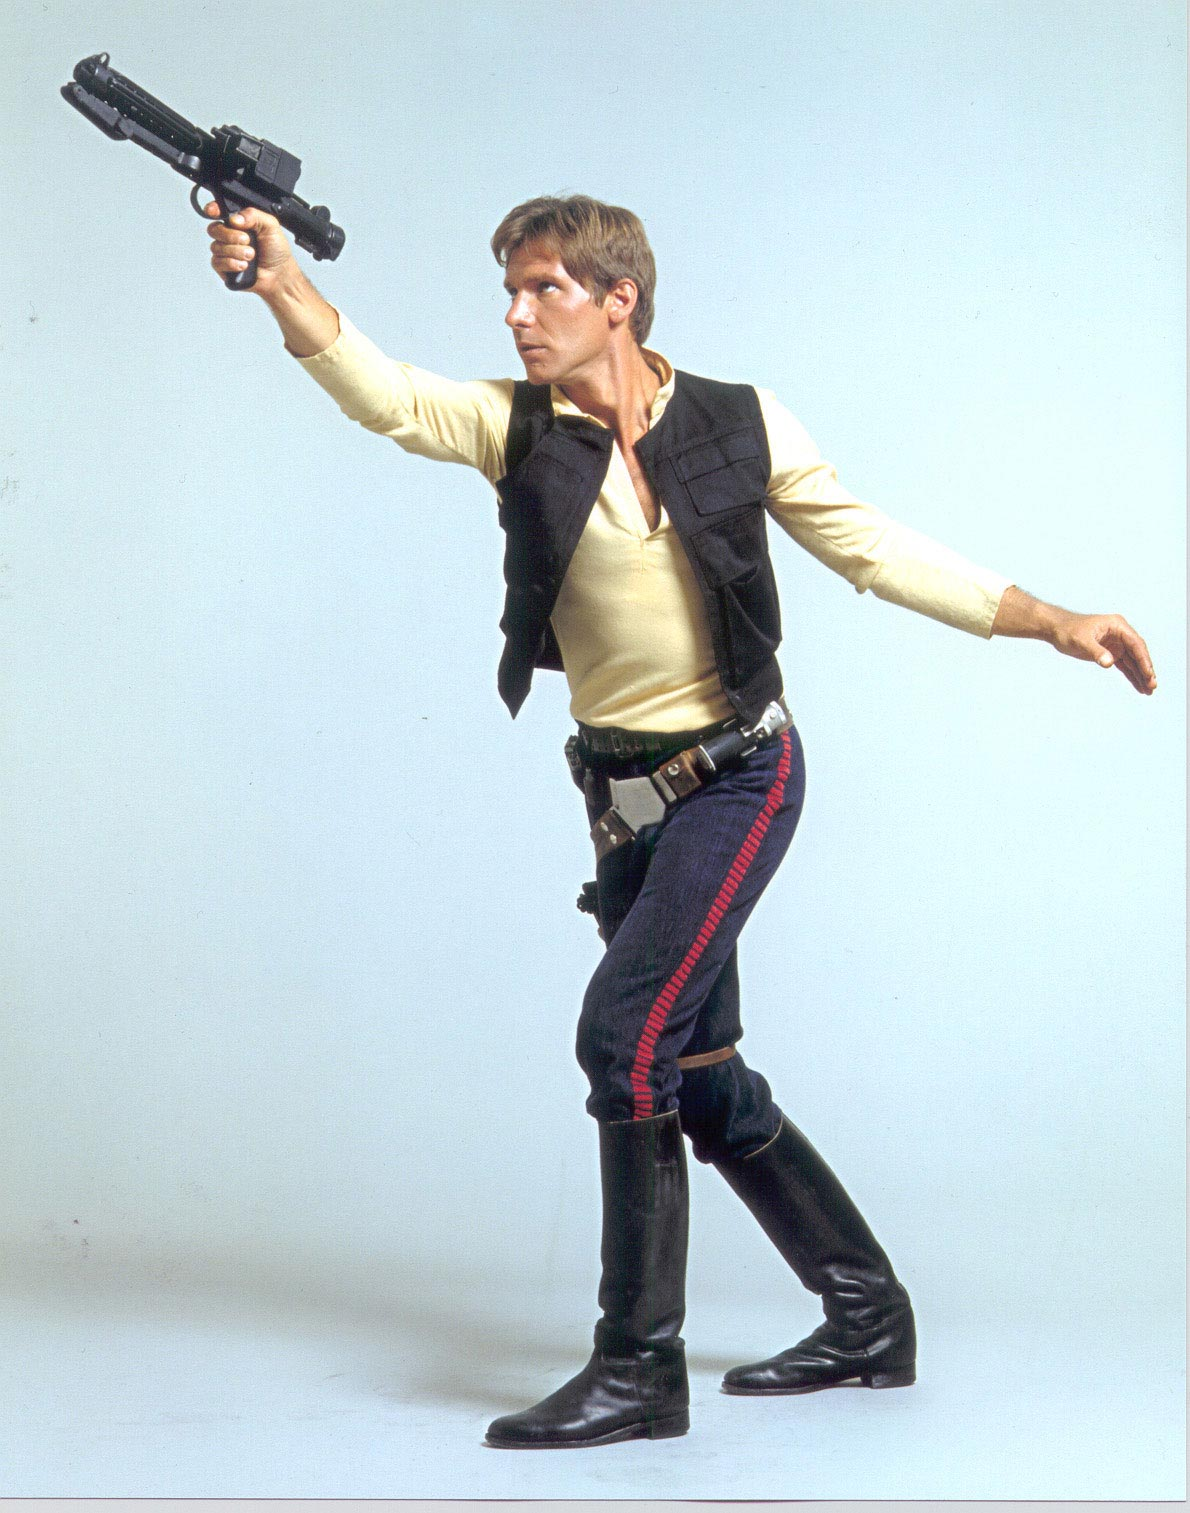 [Sideshow] Star Wars:  Captain Han Solo  - Hoth Sixth Scale Figures Han-solo-star-wars-chronicles-promo-stormtrooper-blaster-alt